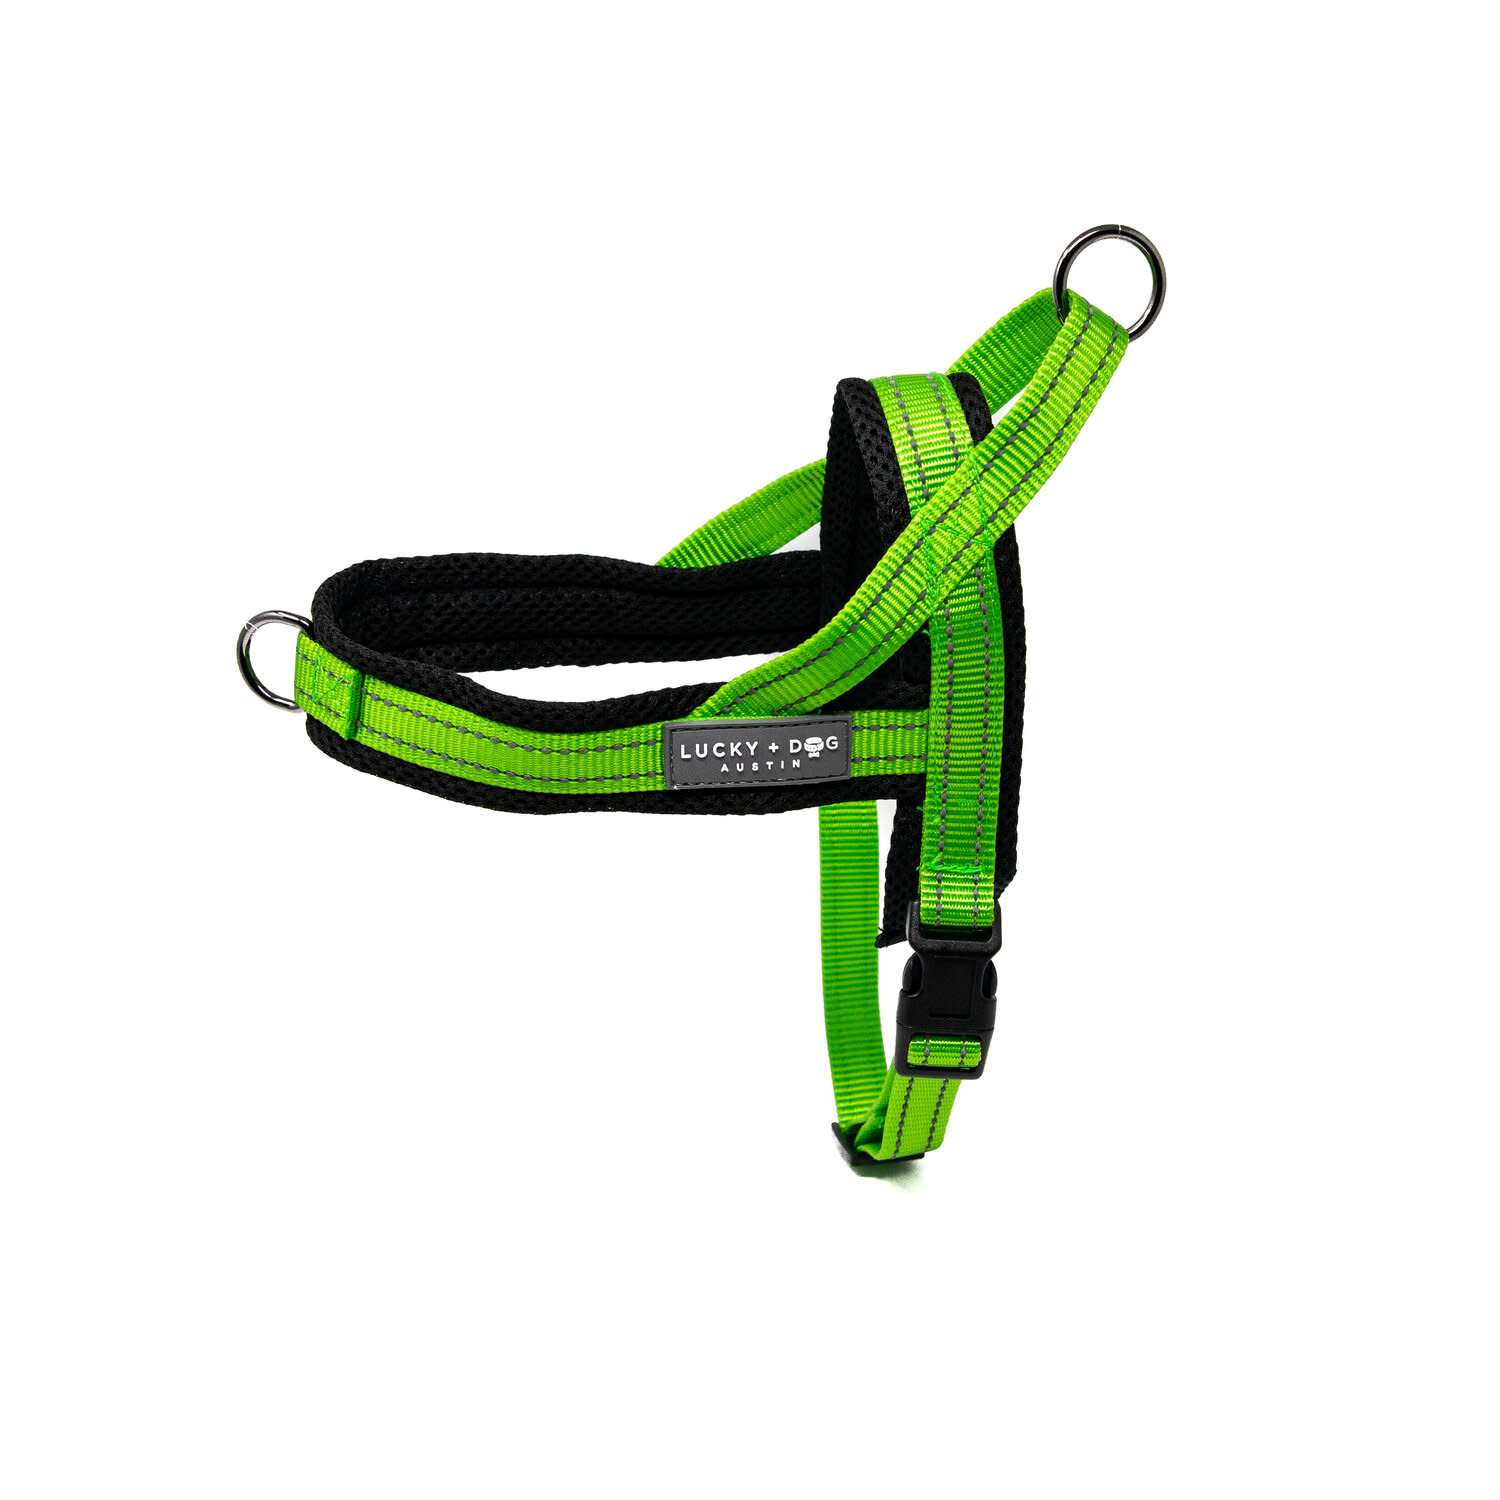 Lucky + Dog Lucky + Dog Quick Fit Harness Bright Green MD